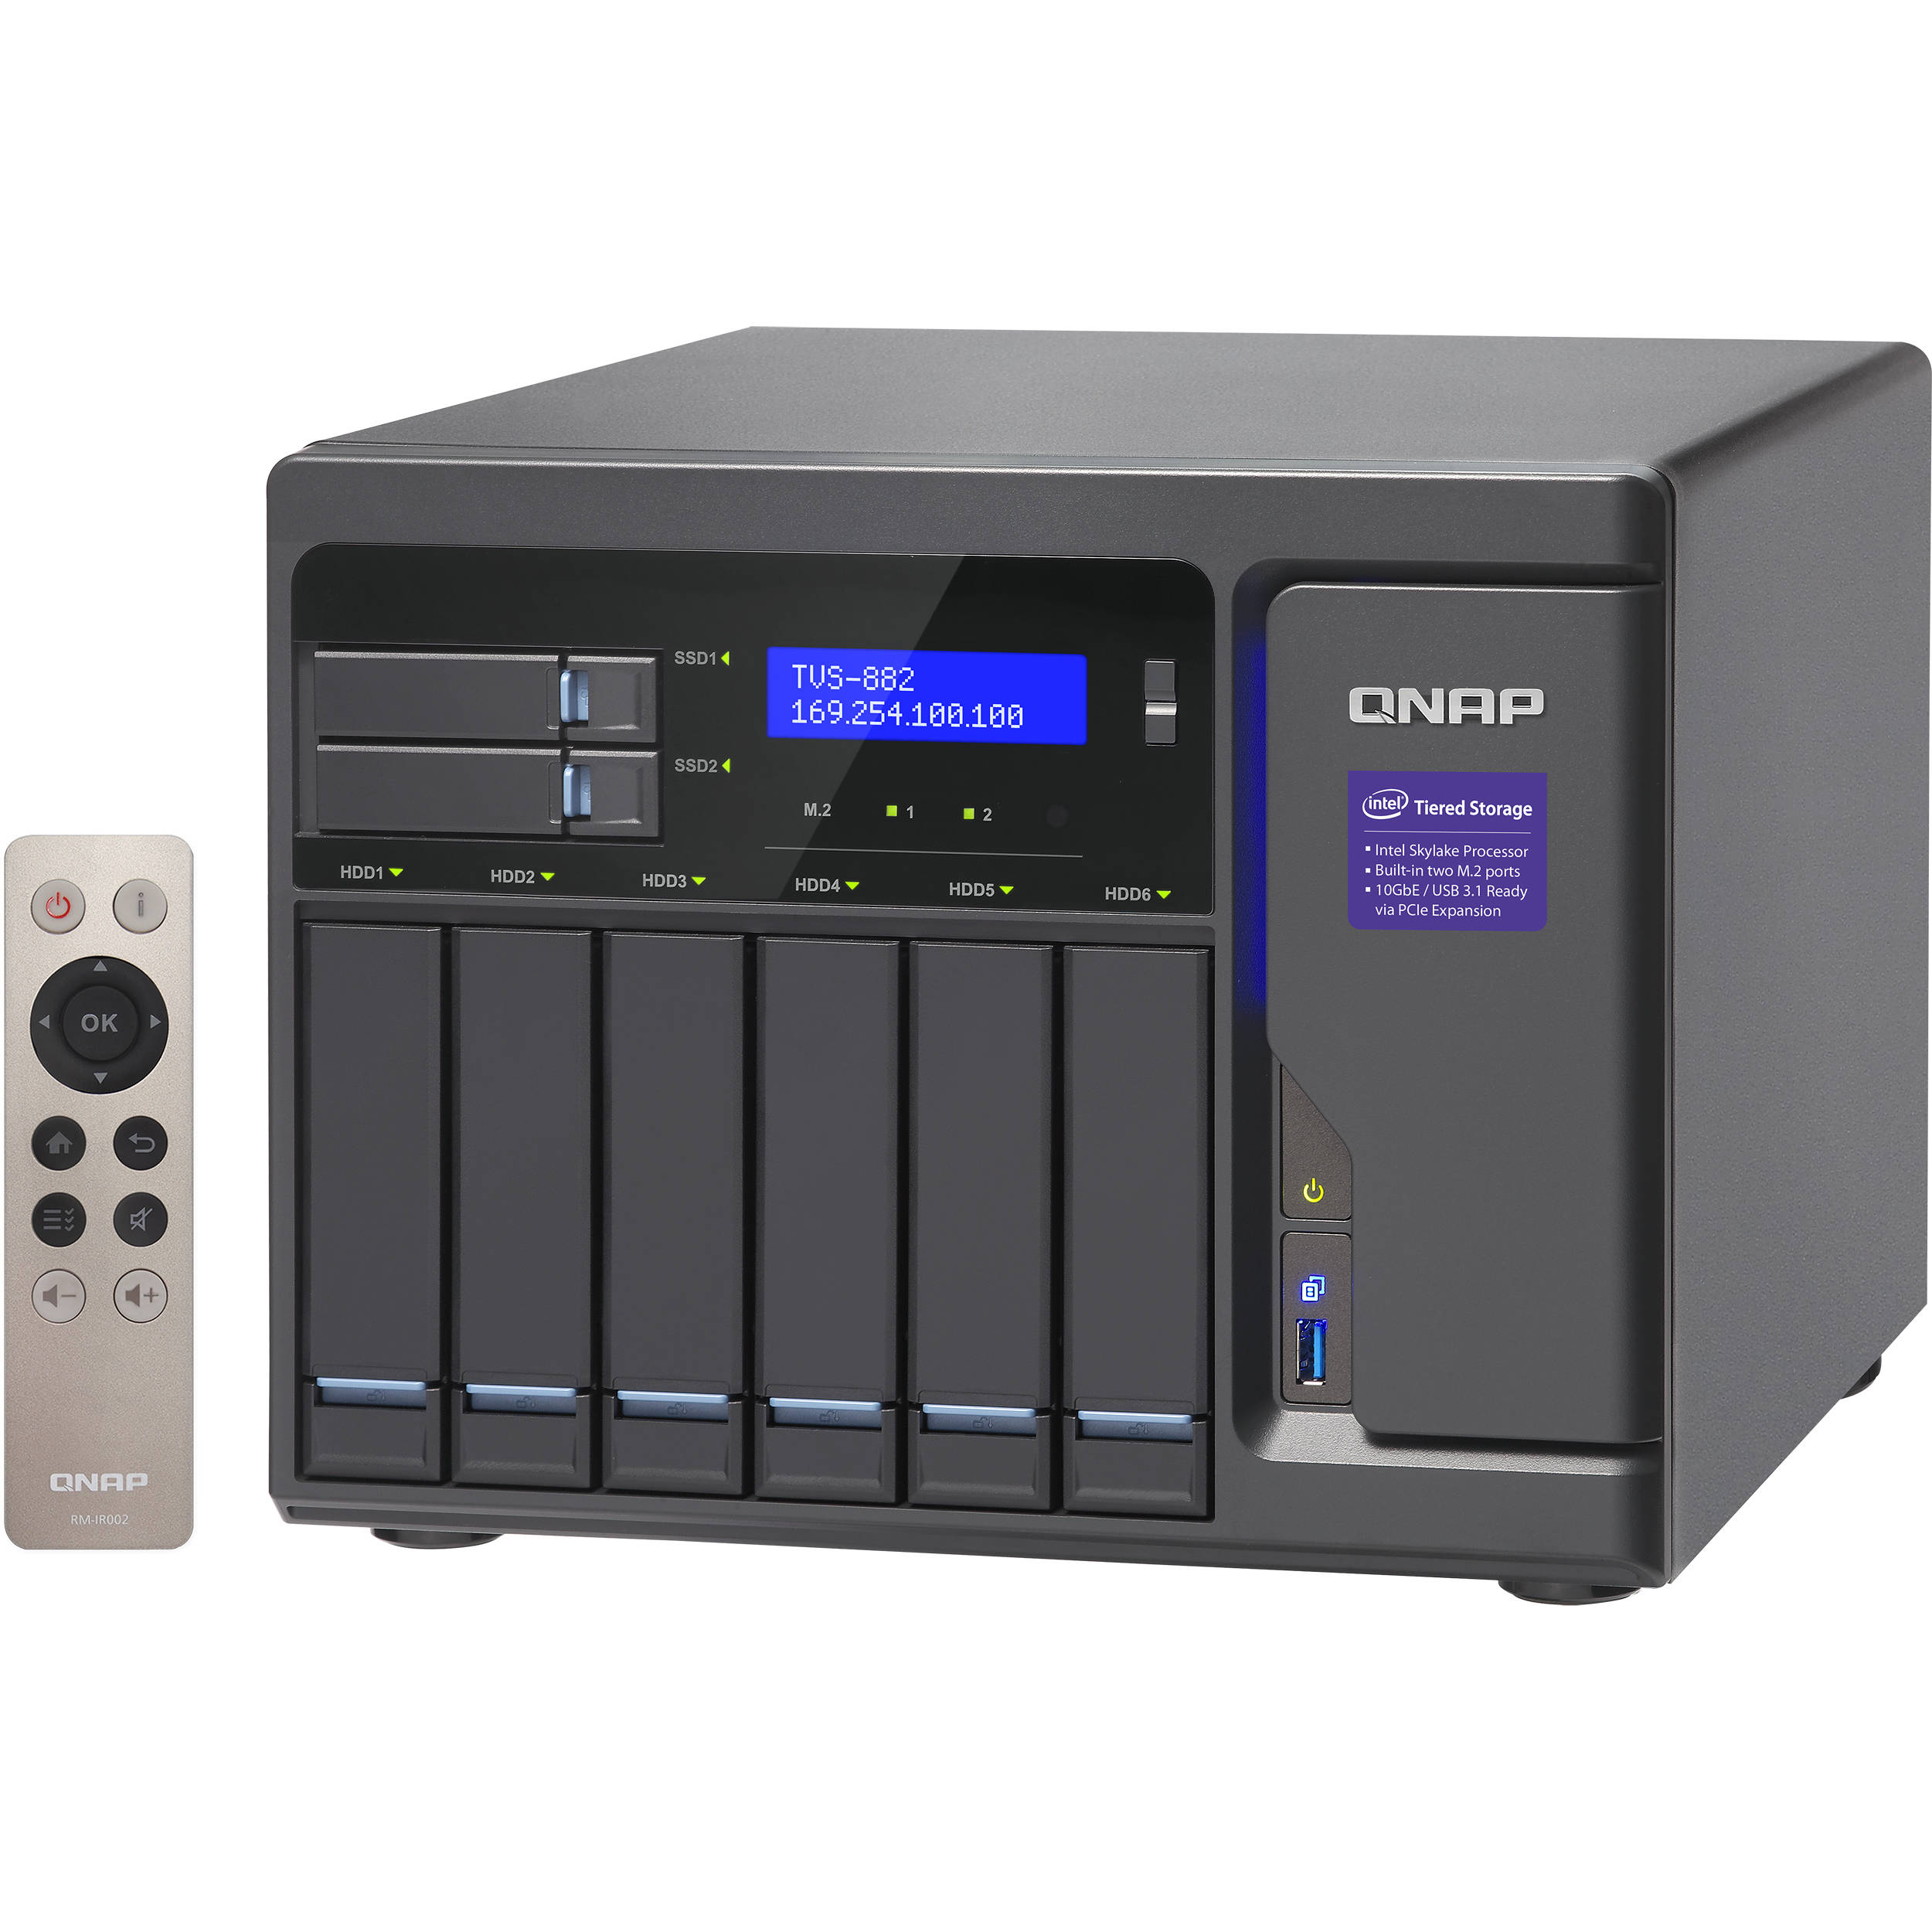 QNAP TVS-882 8-Bay NAS Enclosure